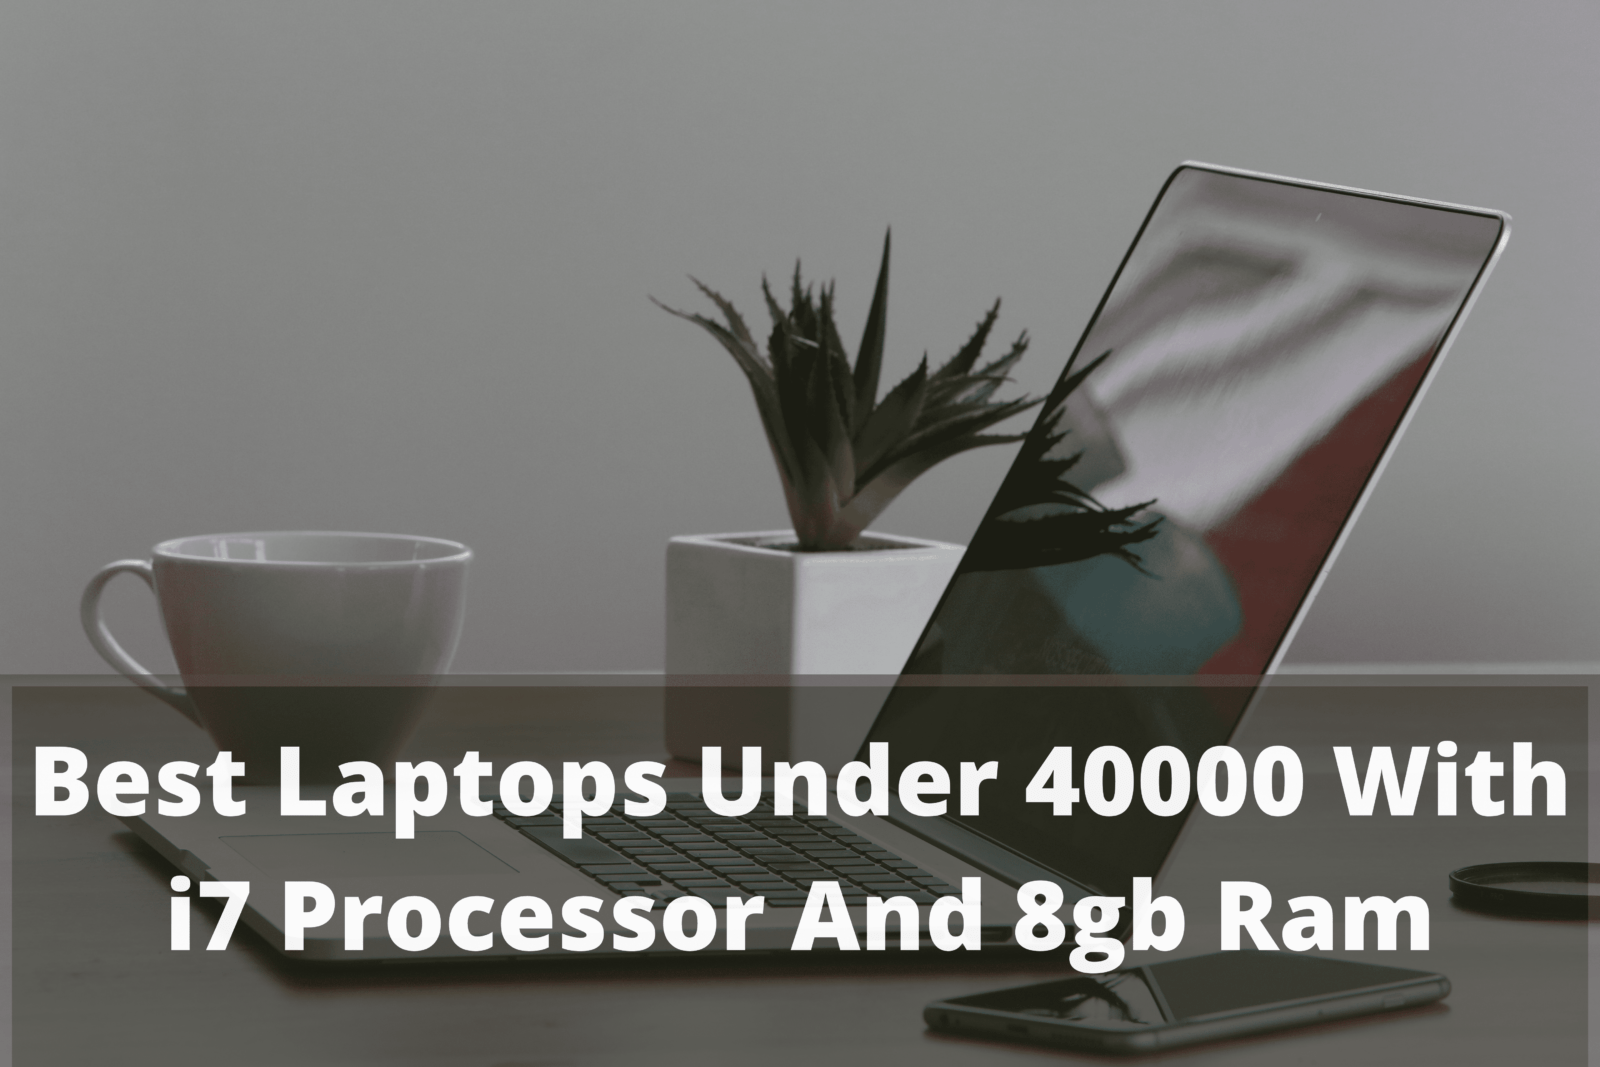 best laptops under 40000 with i7 processor and 8gb ram